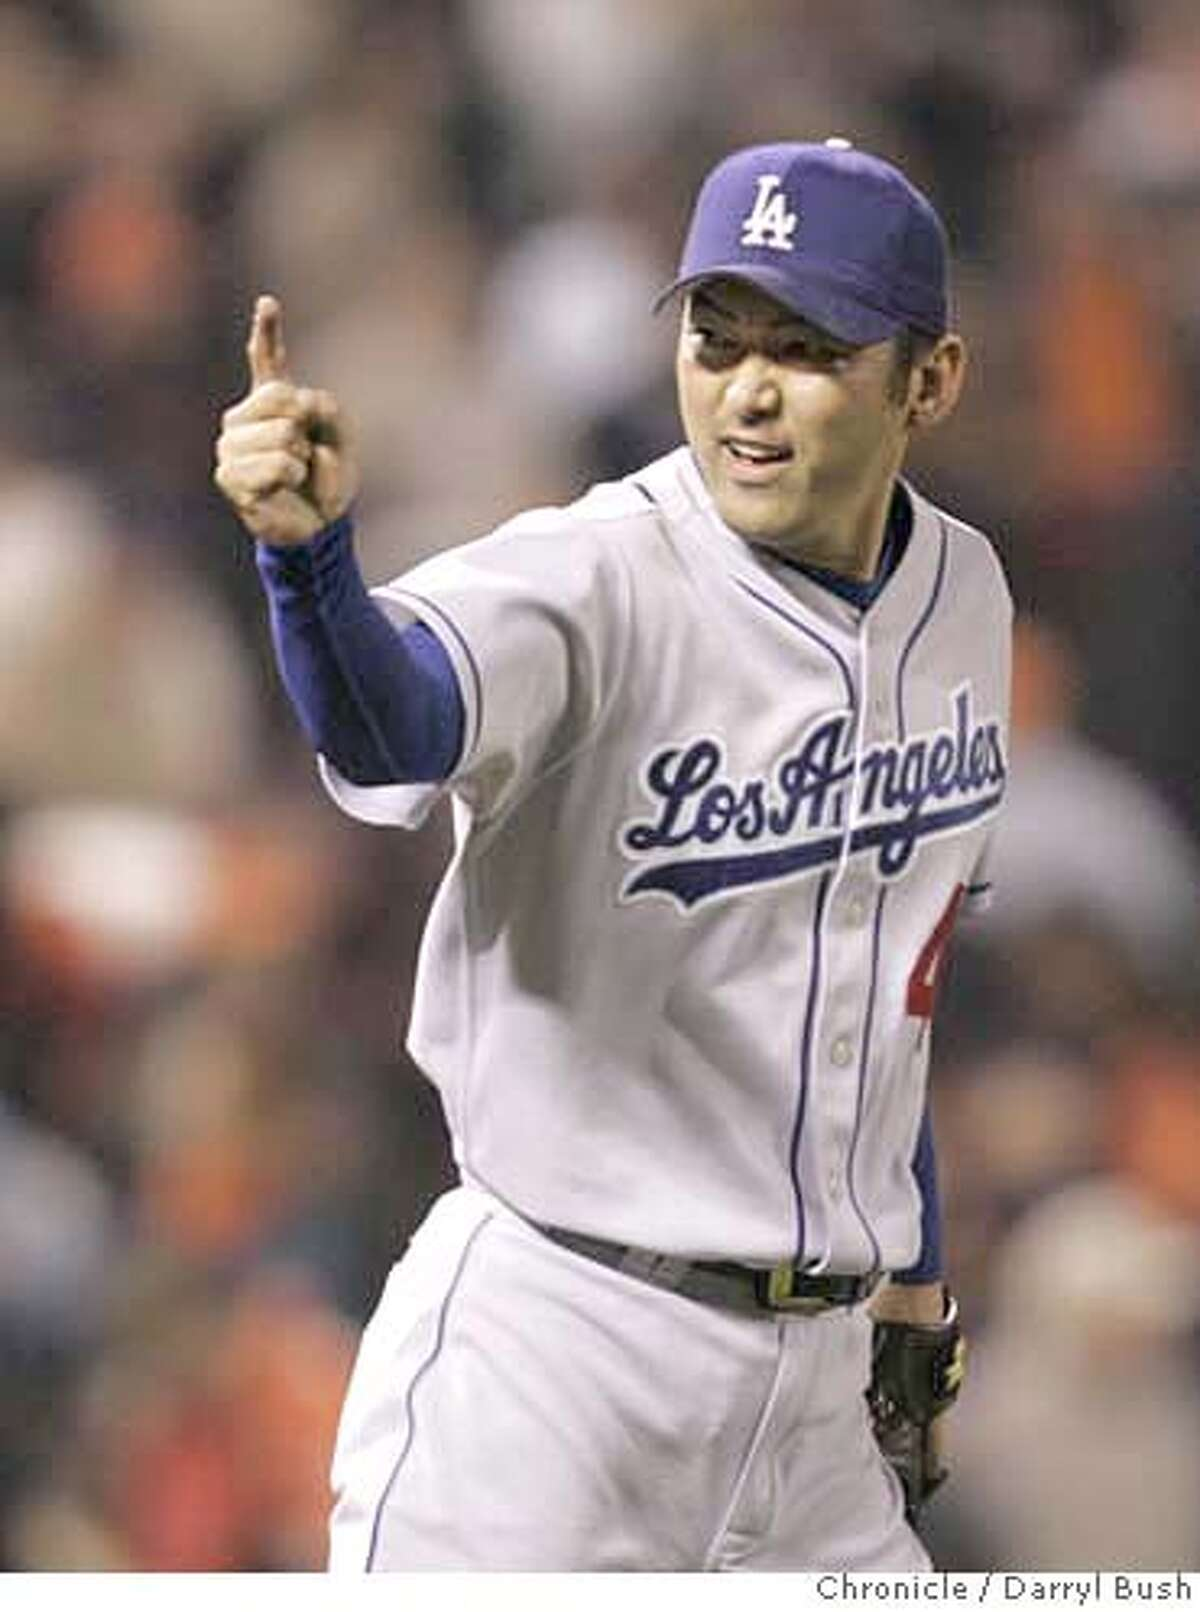 giants_0008_db.JPG Los Angeles Dodgers pitcher Takashi Saito celebrates after stopping the Giants in the 9th for the victory San Francisco Giants vs. Los Angeles Dodgers at AT&T Park in San Francisco, CA on Friday, September 29, 2006. 9/29/06 Darryl Bush / The Chronicle ** (cq) Ran on: 09-30-2006 Takashi Saito knows the Dodgers magic number for clinching a playoff spot after saving Fridays game with the Giants.